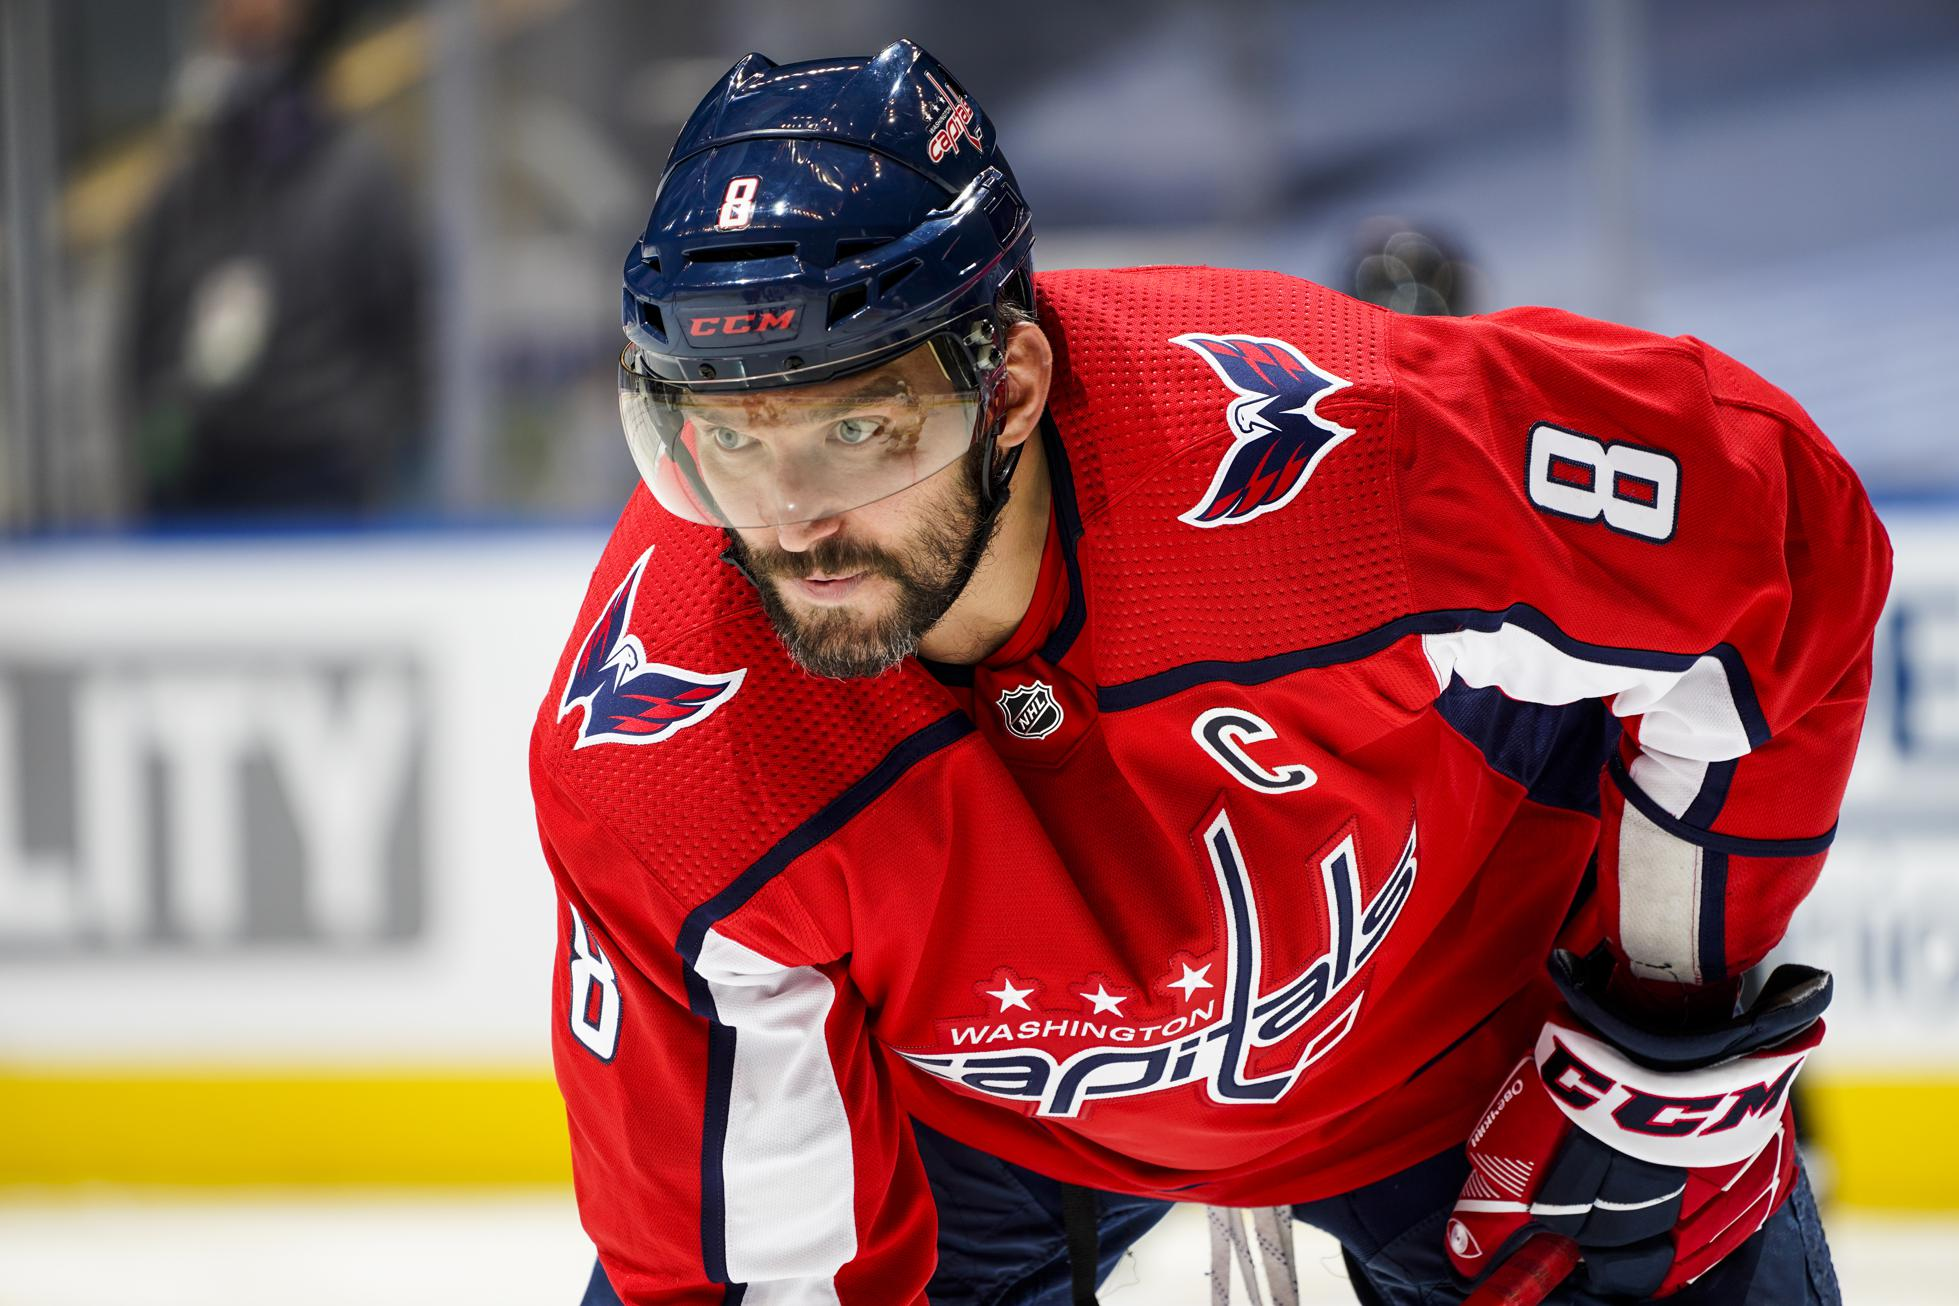 Alex Ovechkin #8 of the Washington Capitals gets ready for a face-off against the Boston Bruins during the third period in an Eastern Conference Round Robin game during the 2020 NHL Stanley Cup Playoff at Scotiabank Arena on August 09, 2020 in Toronto, Ontario.